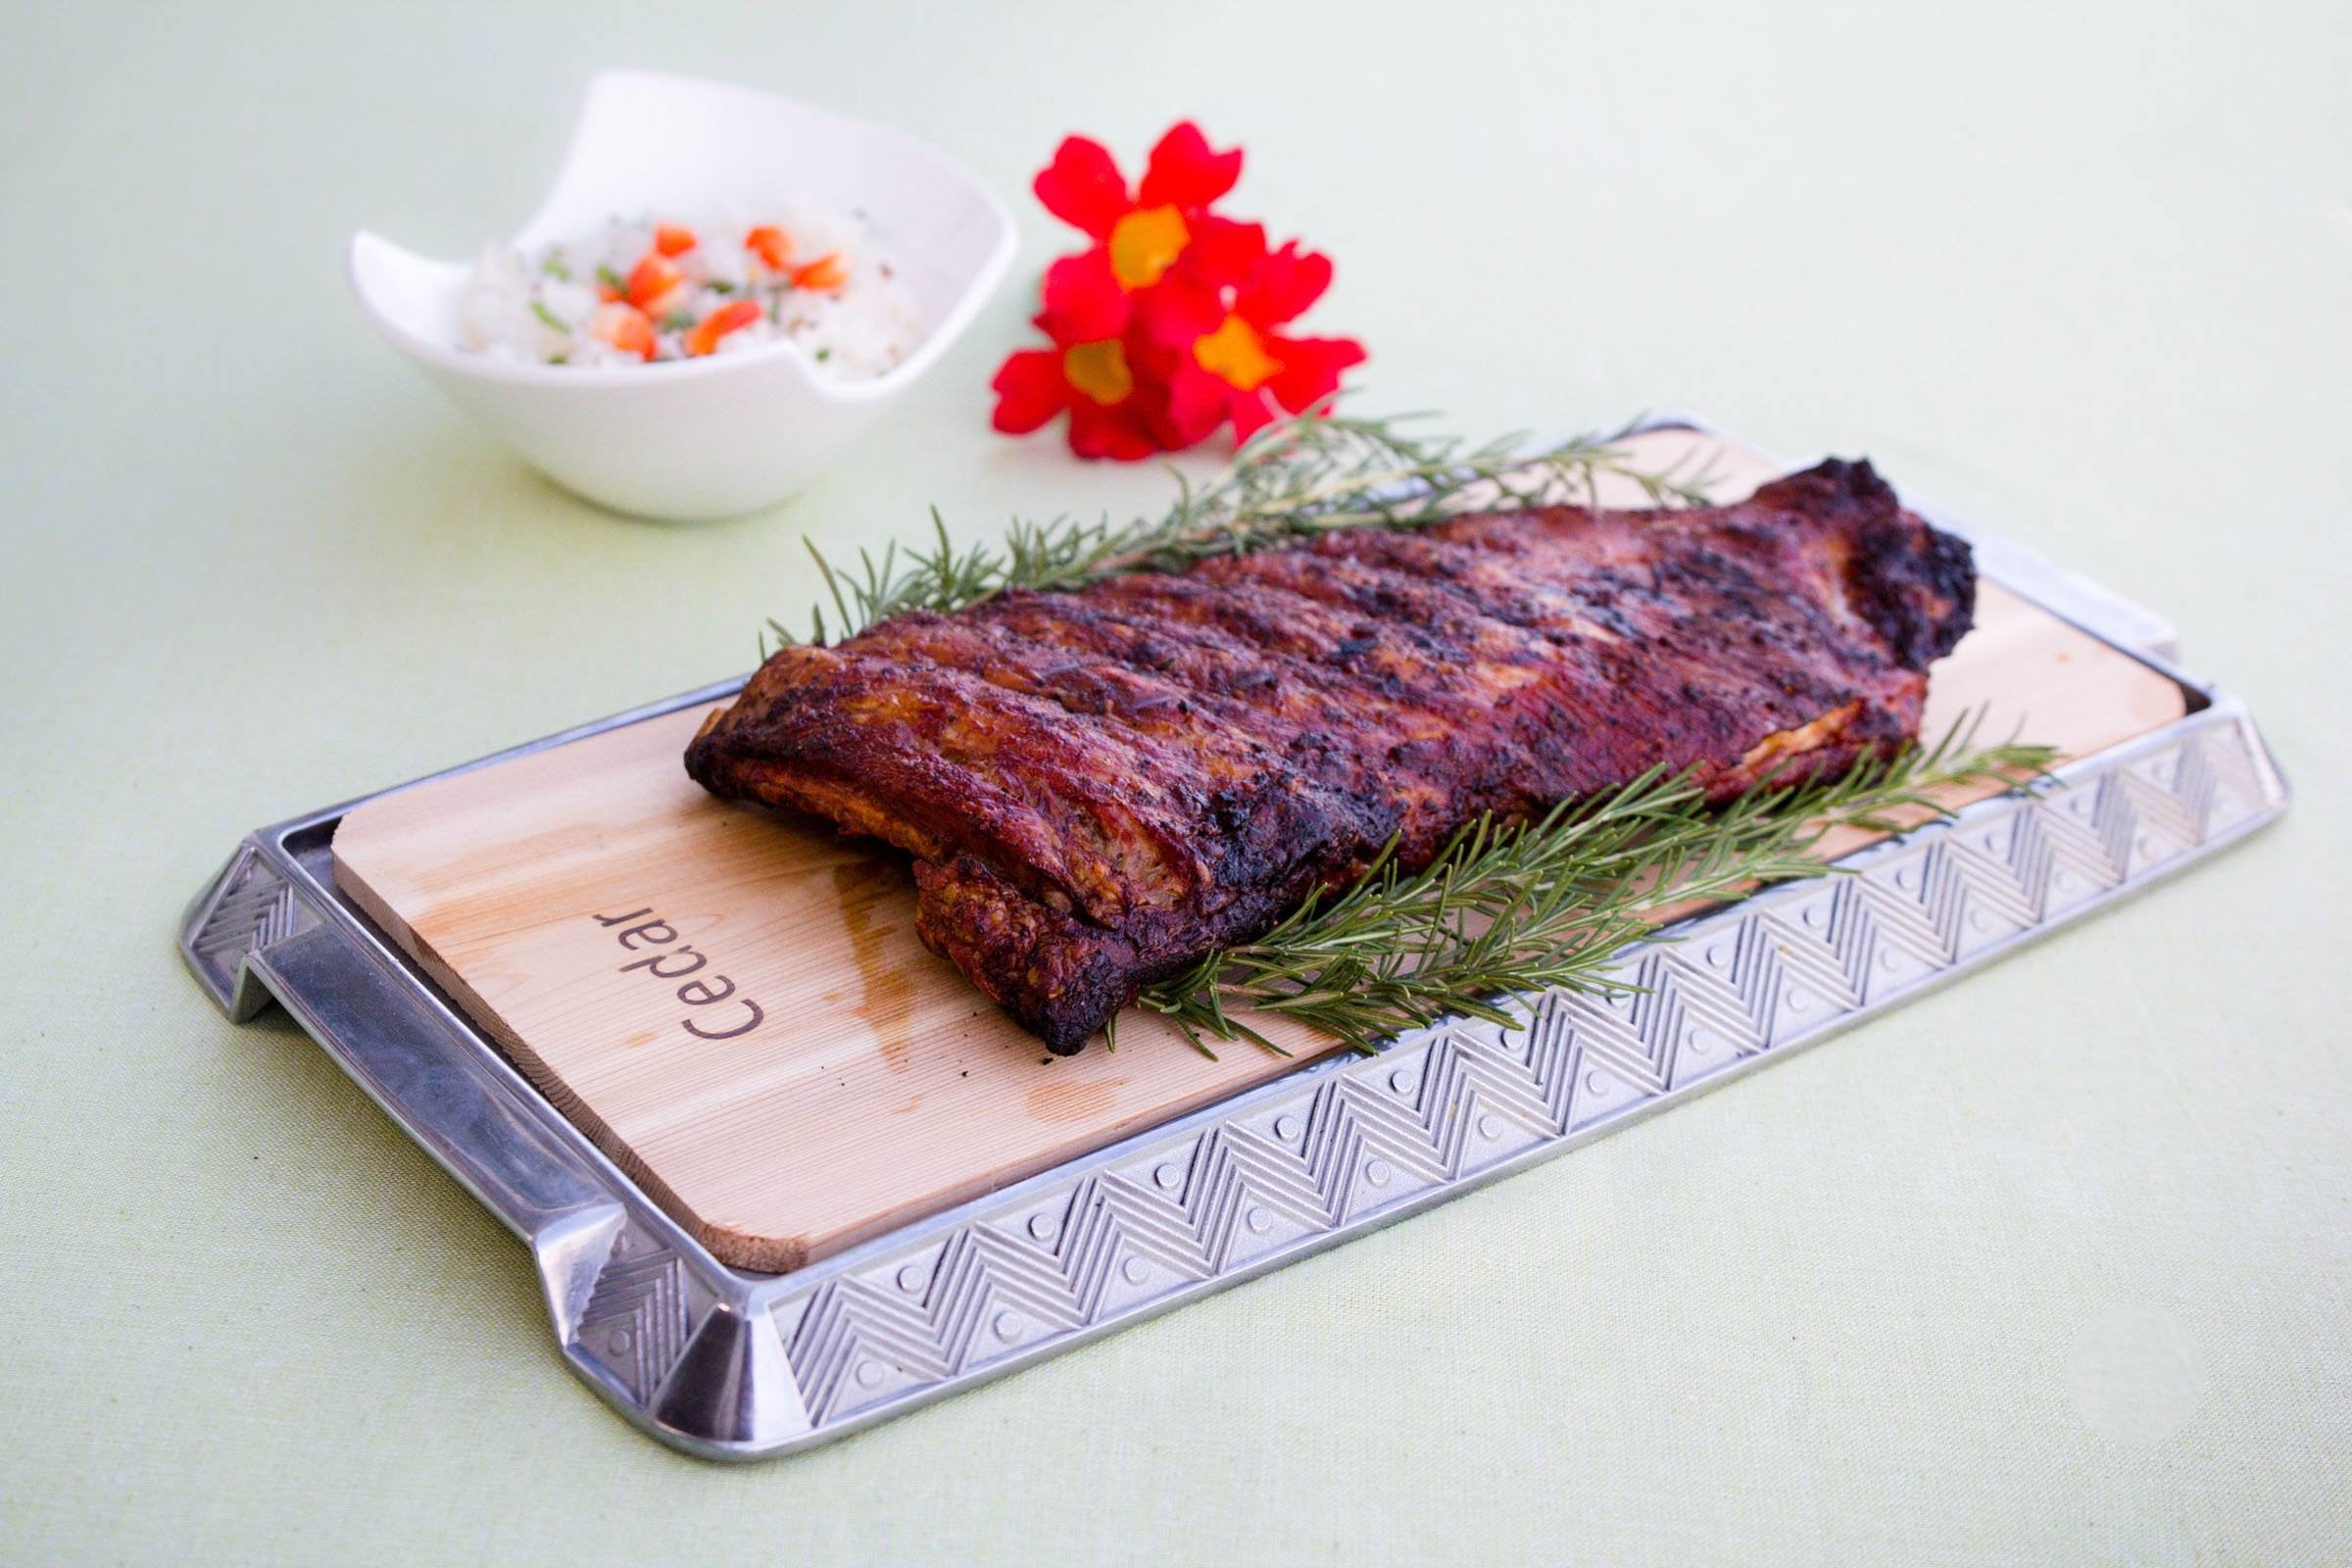 Coastal Cuisine 14 Pack 7x16'' Cedar Grilling Planks + Aluminum Serving Platter – Perfect for any grilling enthusiast.  Enjoy delicious restaurant quality meals and a stunning presentation. by Coastal Cuisine (Image #8)